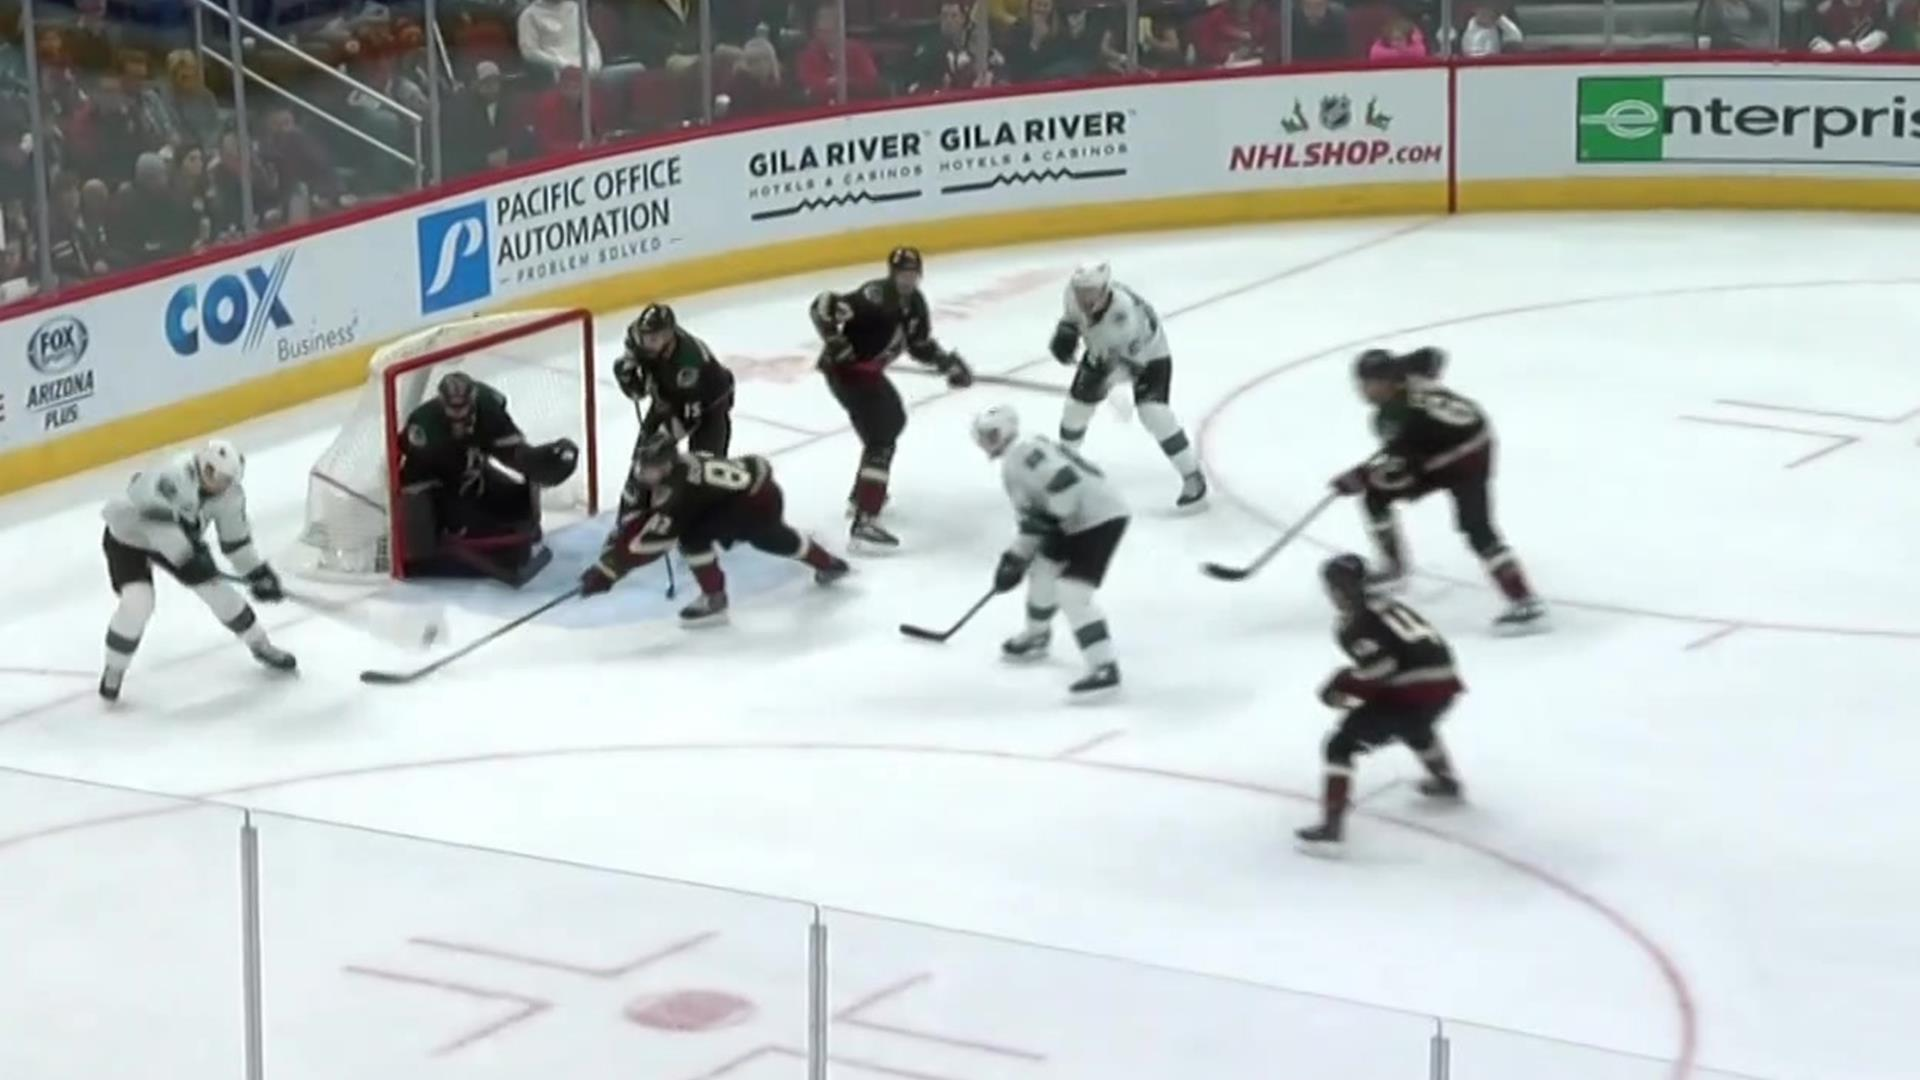 Lukas Radil puts Sharks in front with his 1st career NHL goal vs. Coyotes